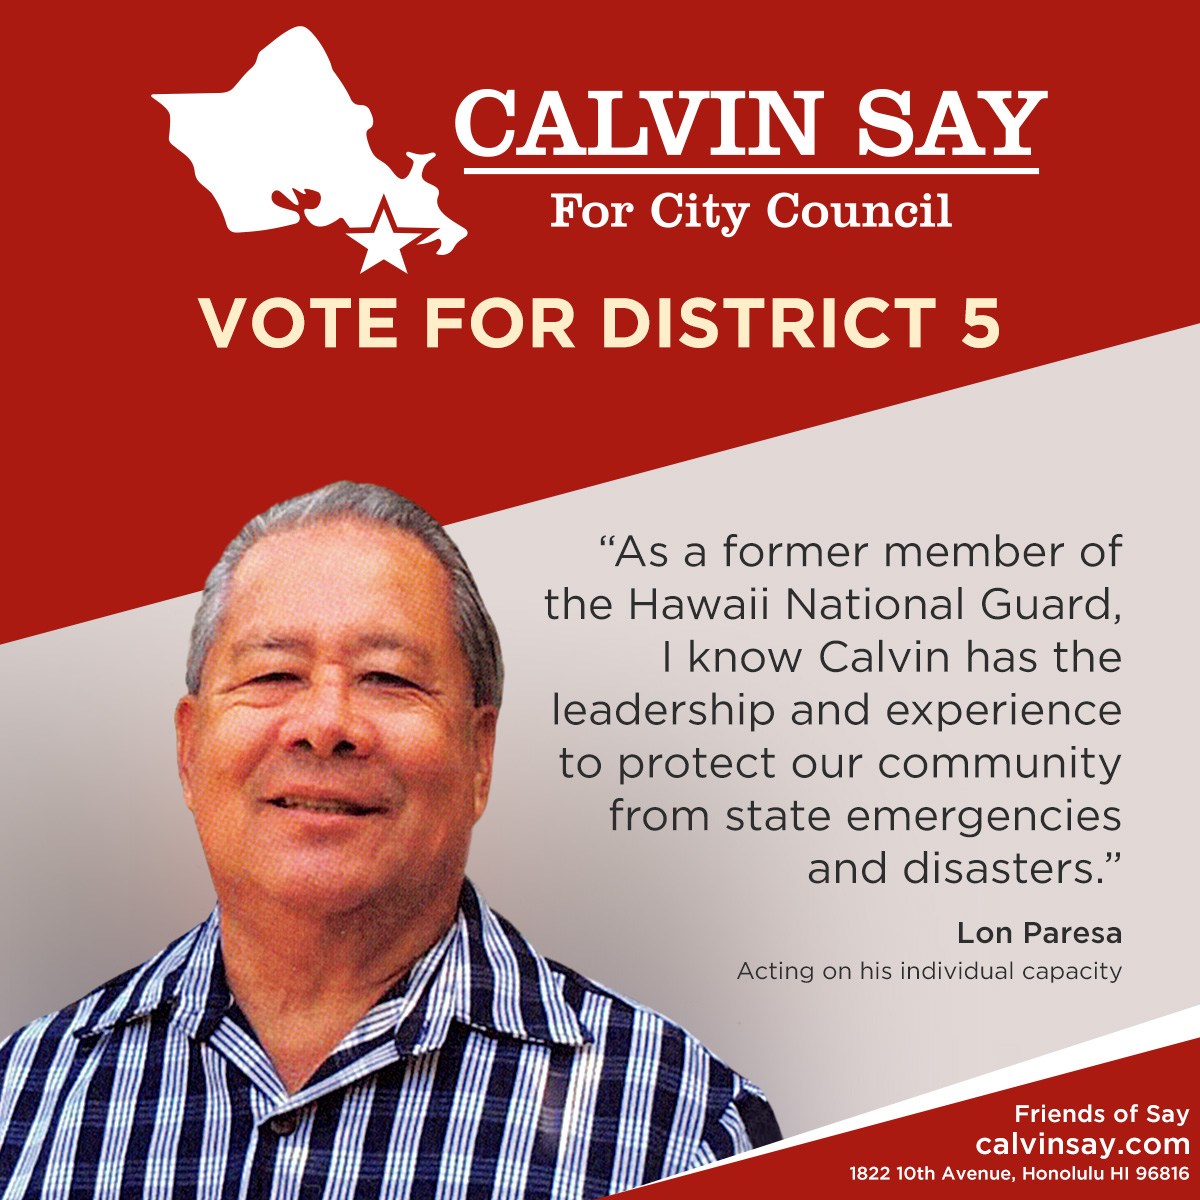 Lon Paresa's words in support of Speaker Calvin K.Y. Say for Honolulu City Council.